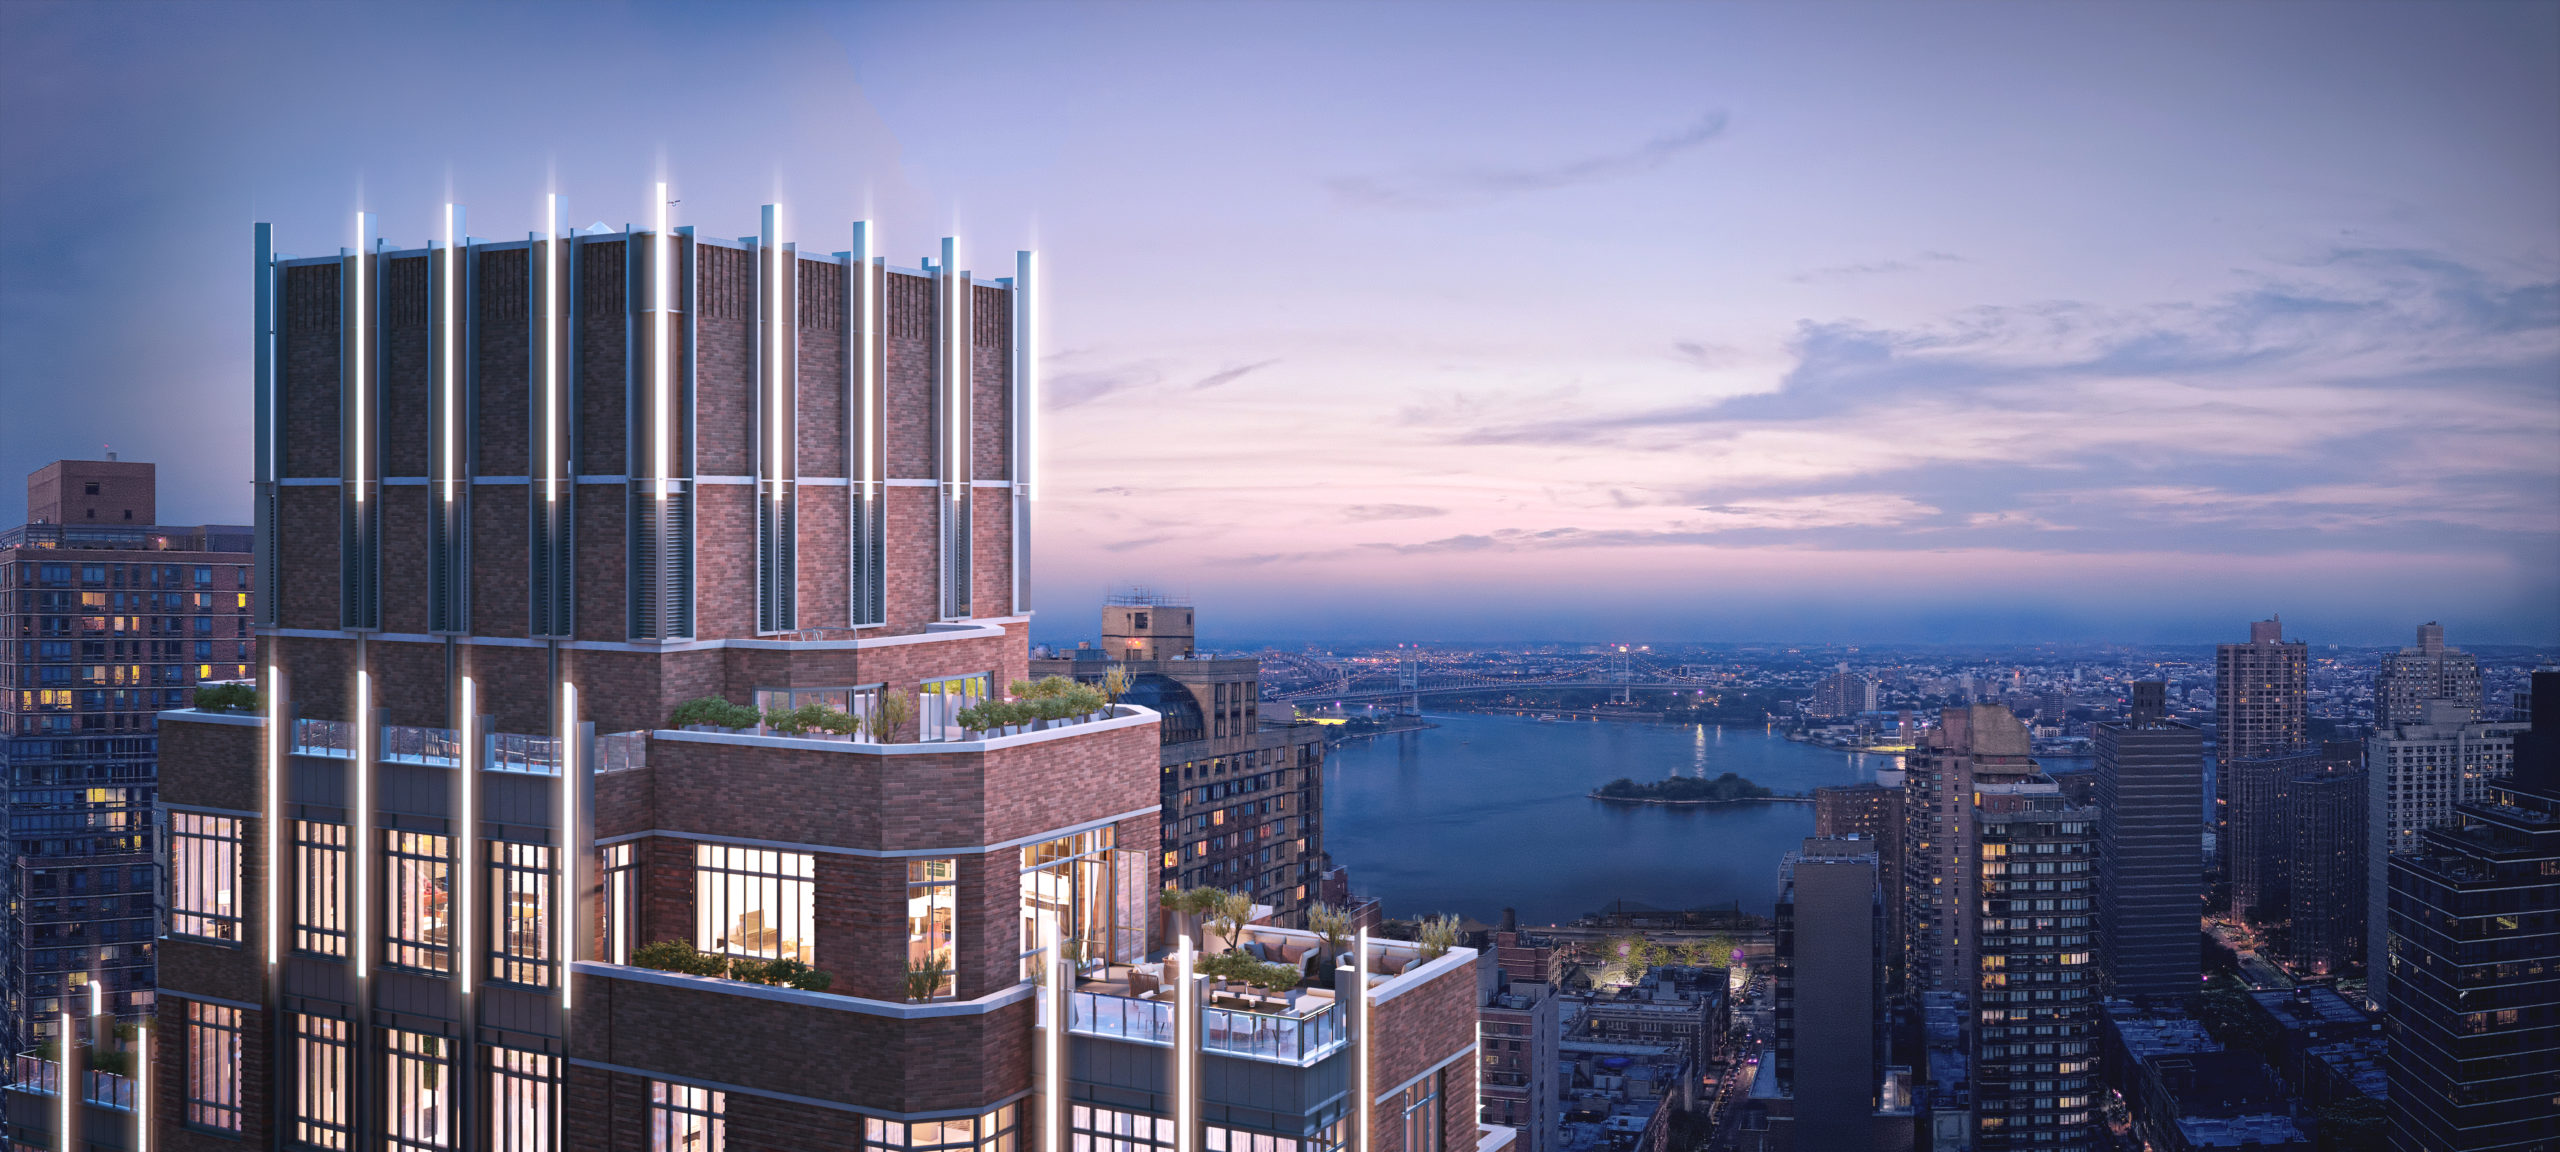 Birdseye view of the Kent penthouse in New York City. Brick exterior with rooftop patio with unobstructed city views at dusk.